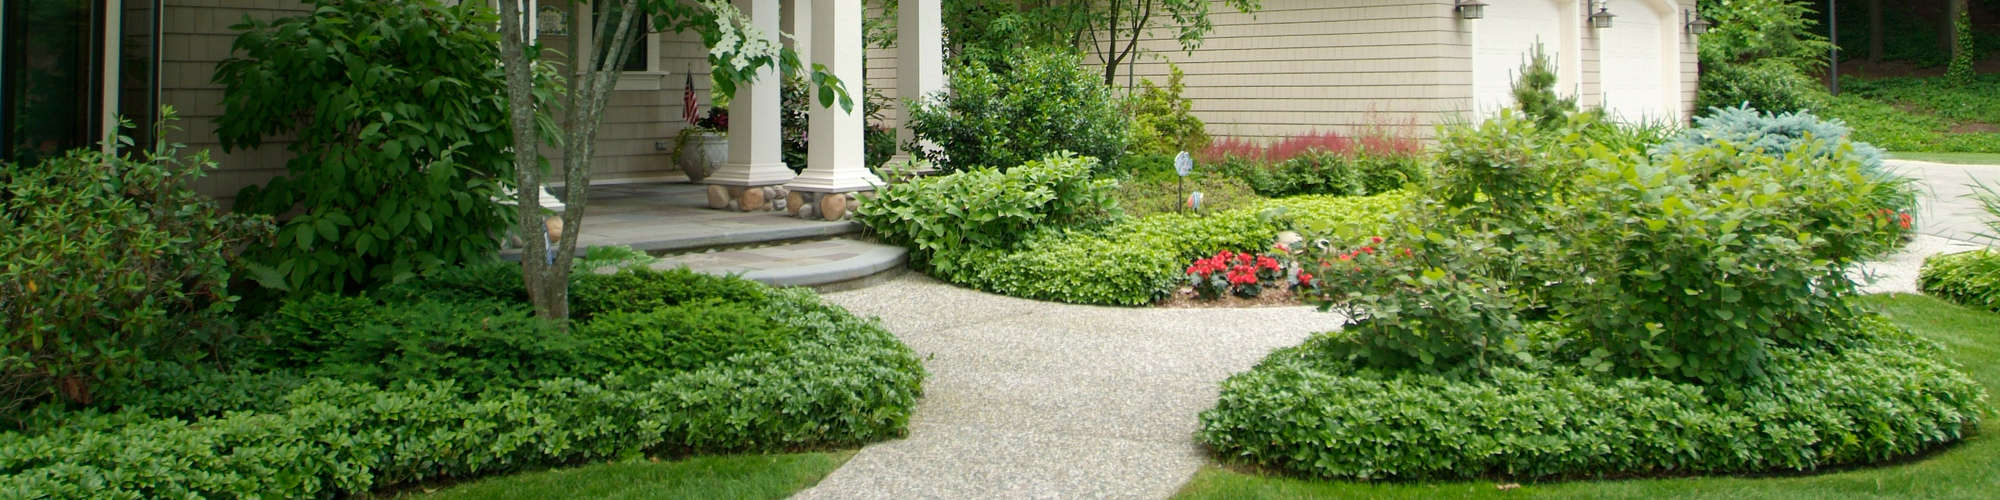 Landscapes - Windscapes Landscaping - Landscape Design Grand Rapids MI